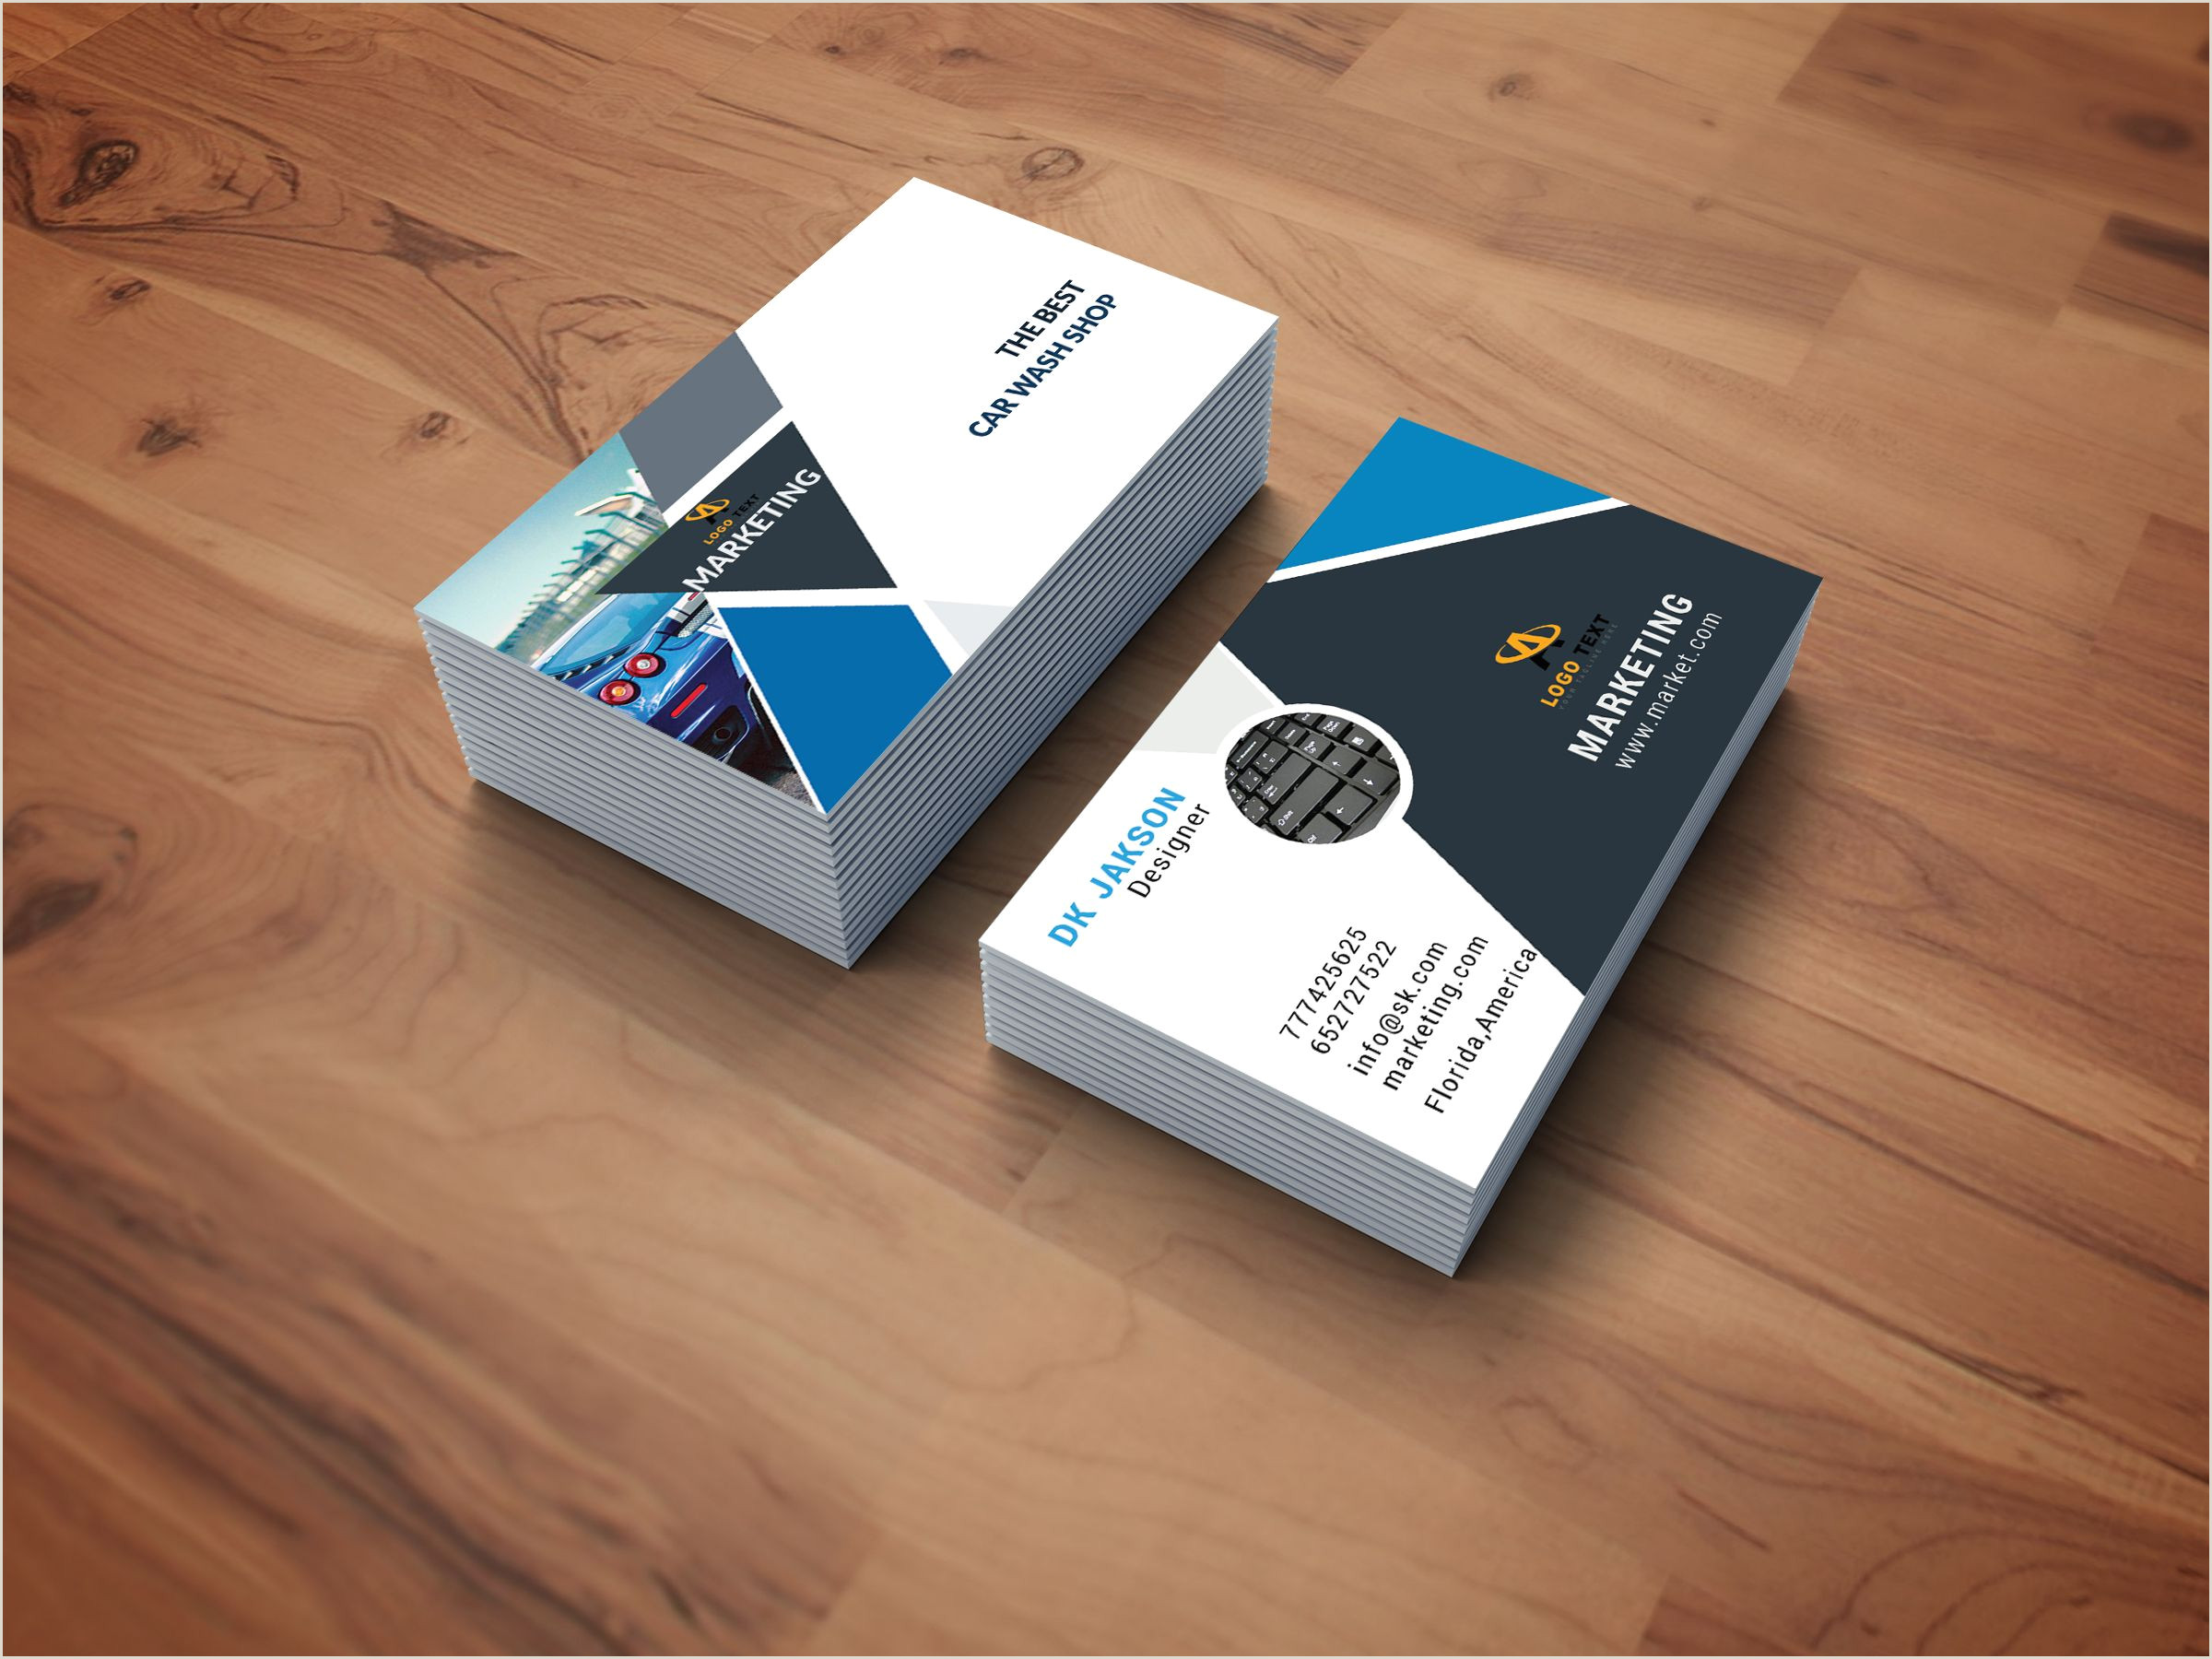 Best Business Cards When In 5/24 Flyertalk Get Everything You Need Starting At $5 Fiverr